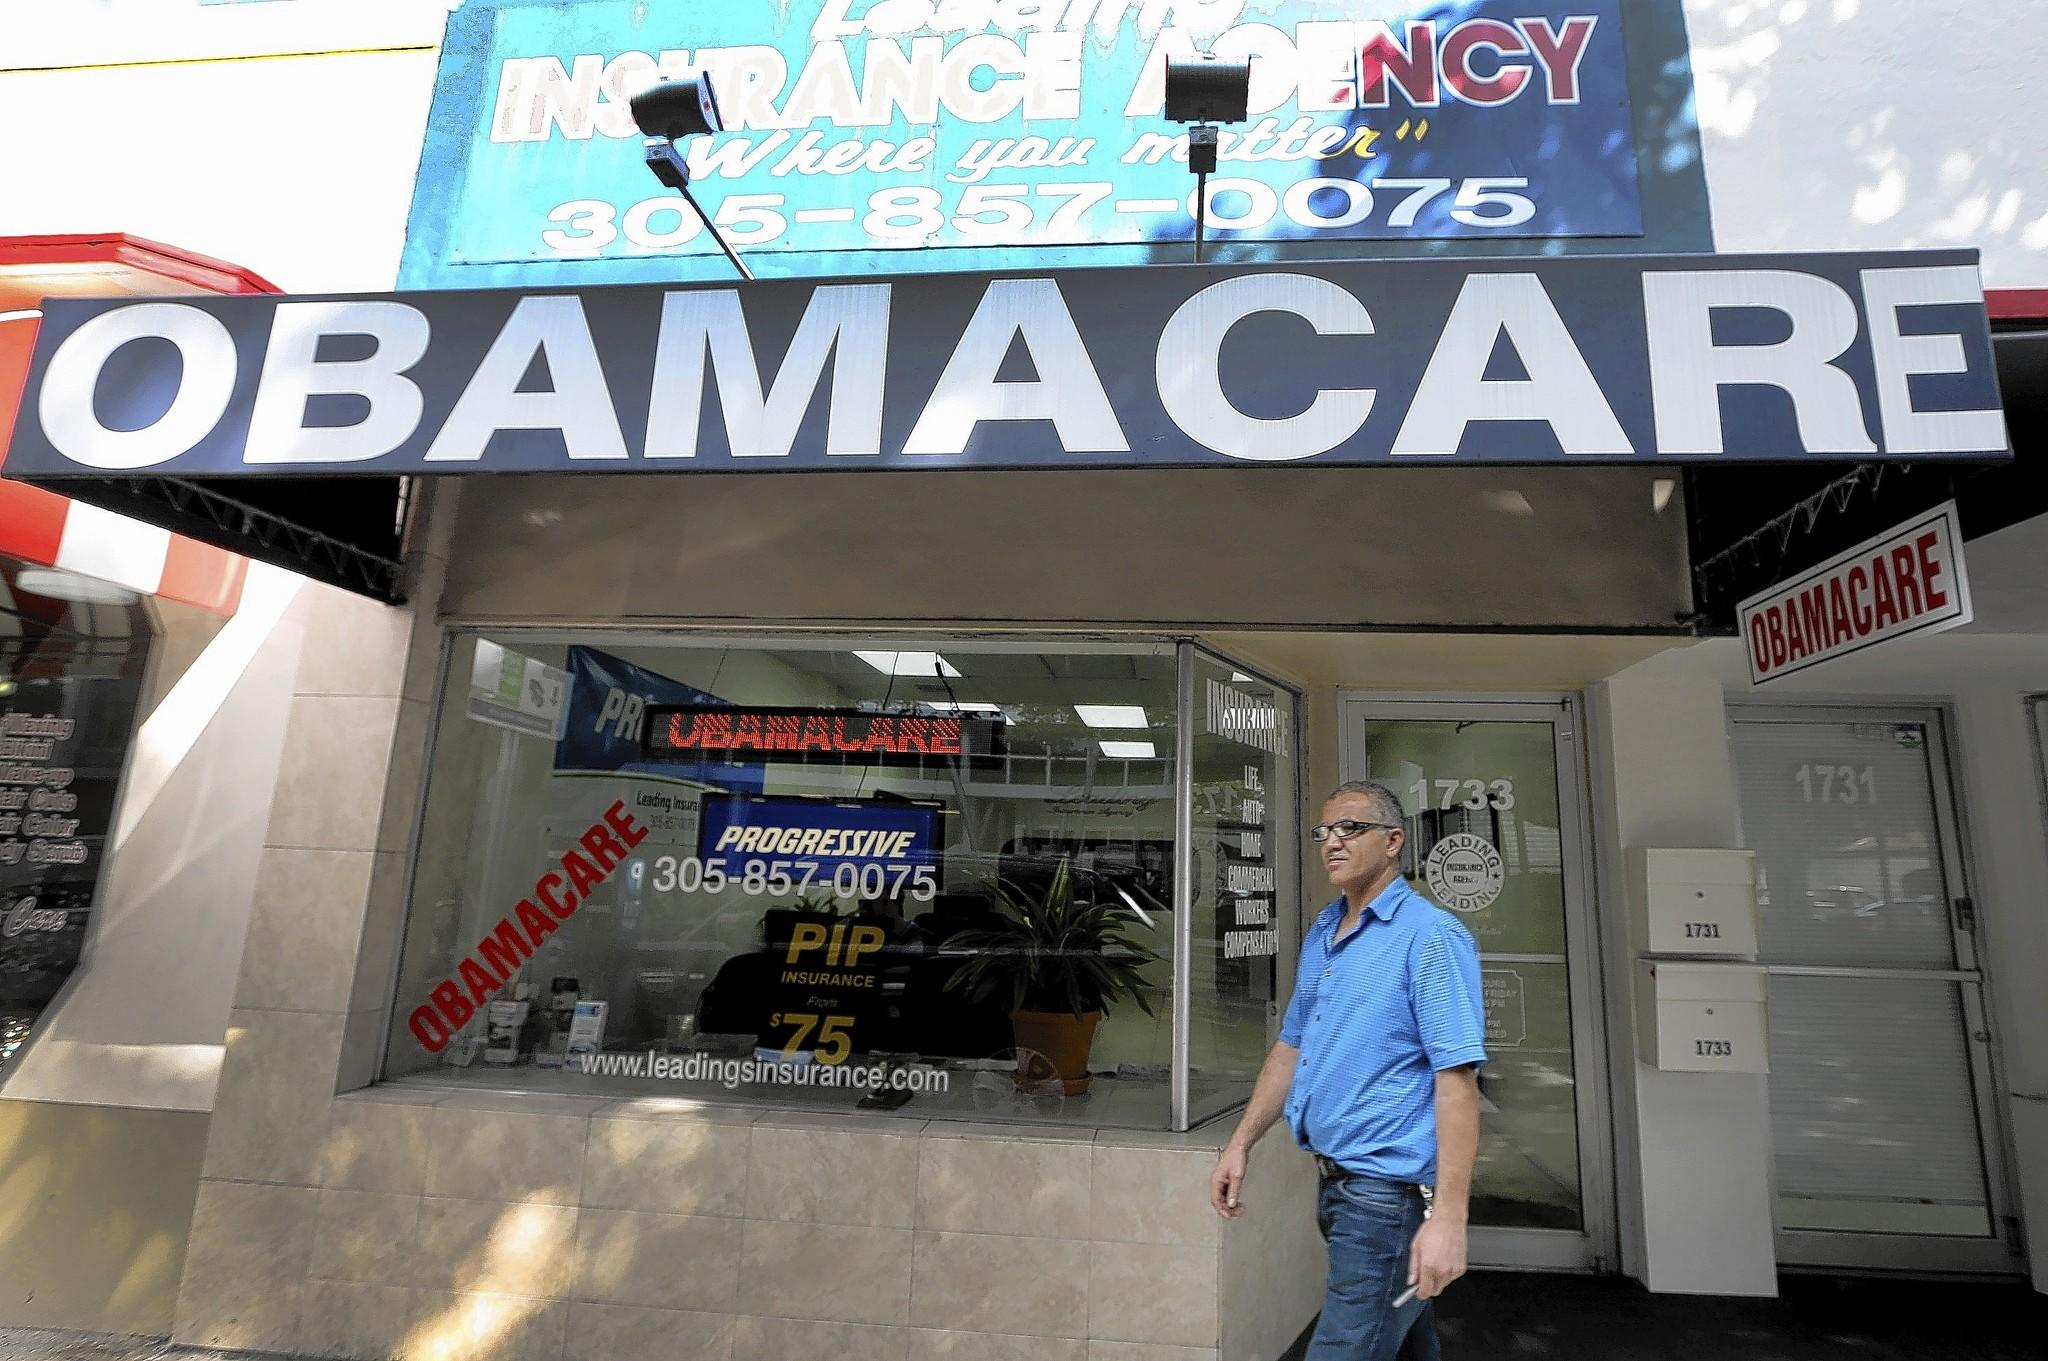 Senior Obama administration officials said they believe about 1.5 million consumers are covered under plans that don't meet standards set by the president's new health law.